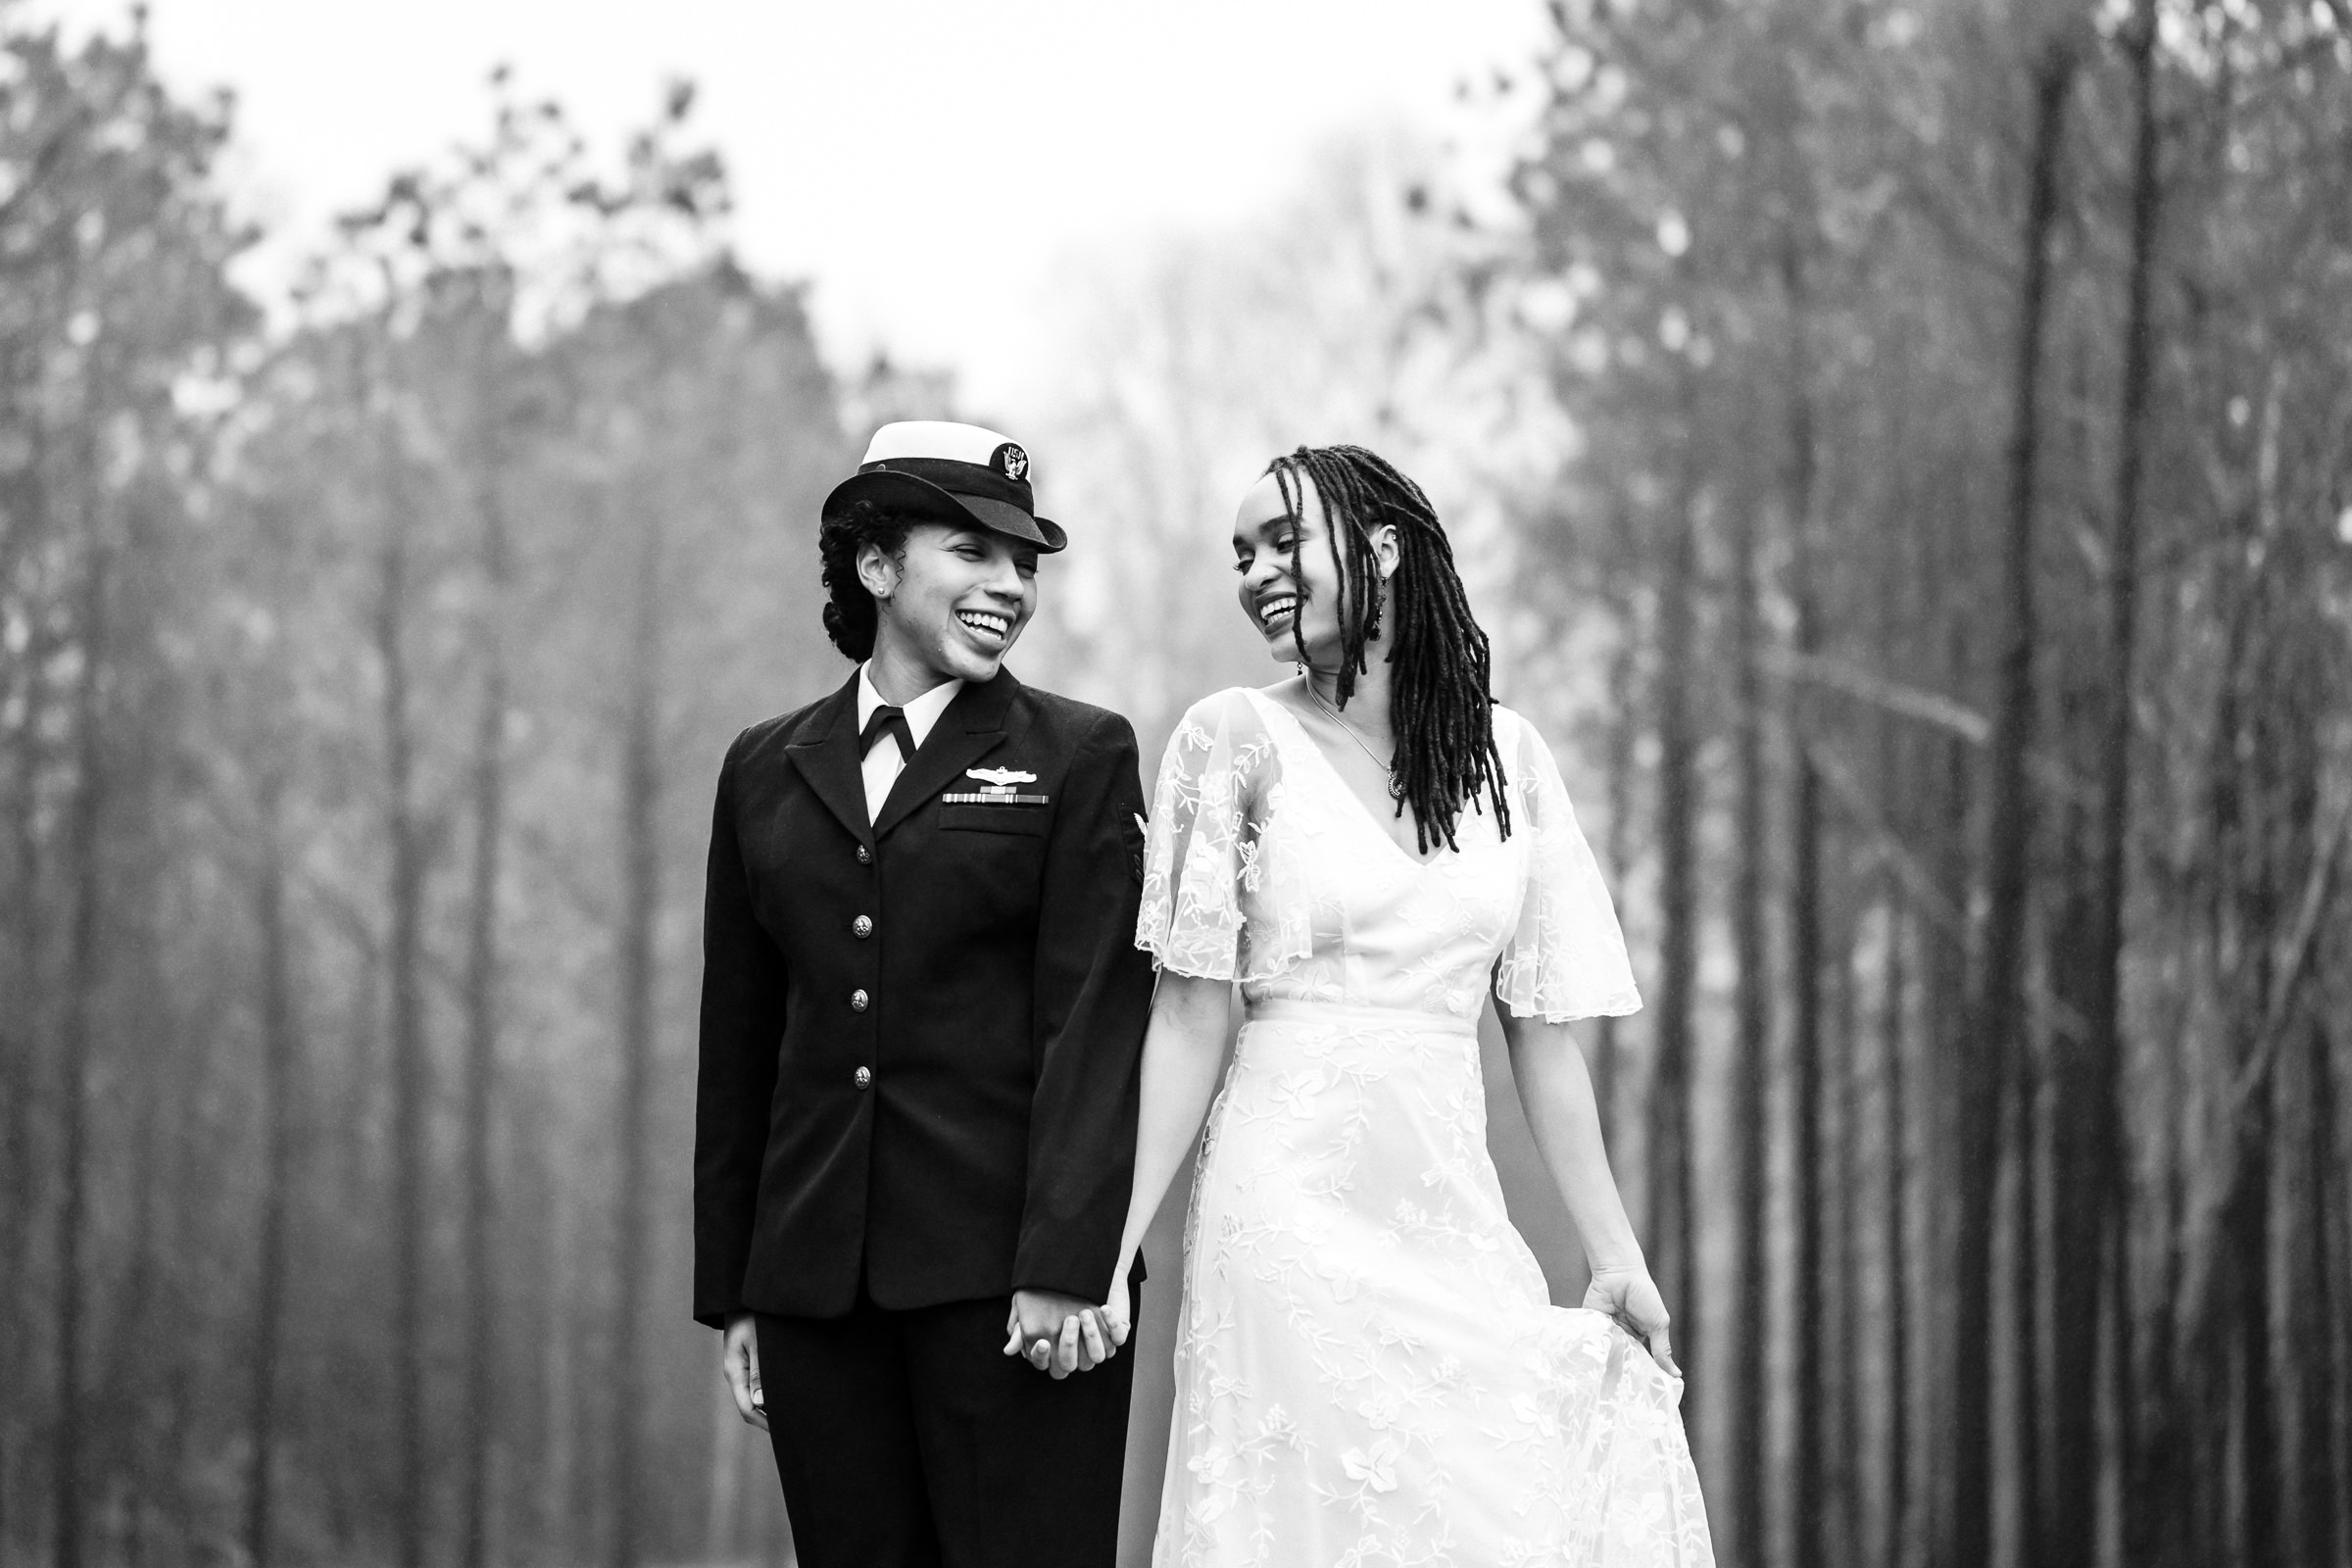 Uniformed military bride with her bride - photo by Xiaoqi Li Photography